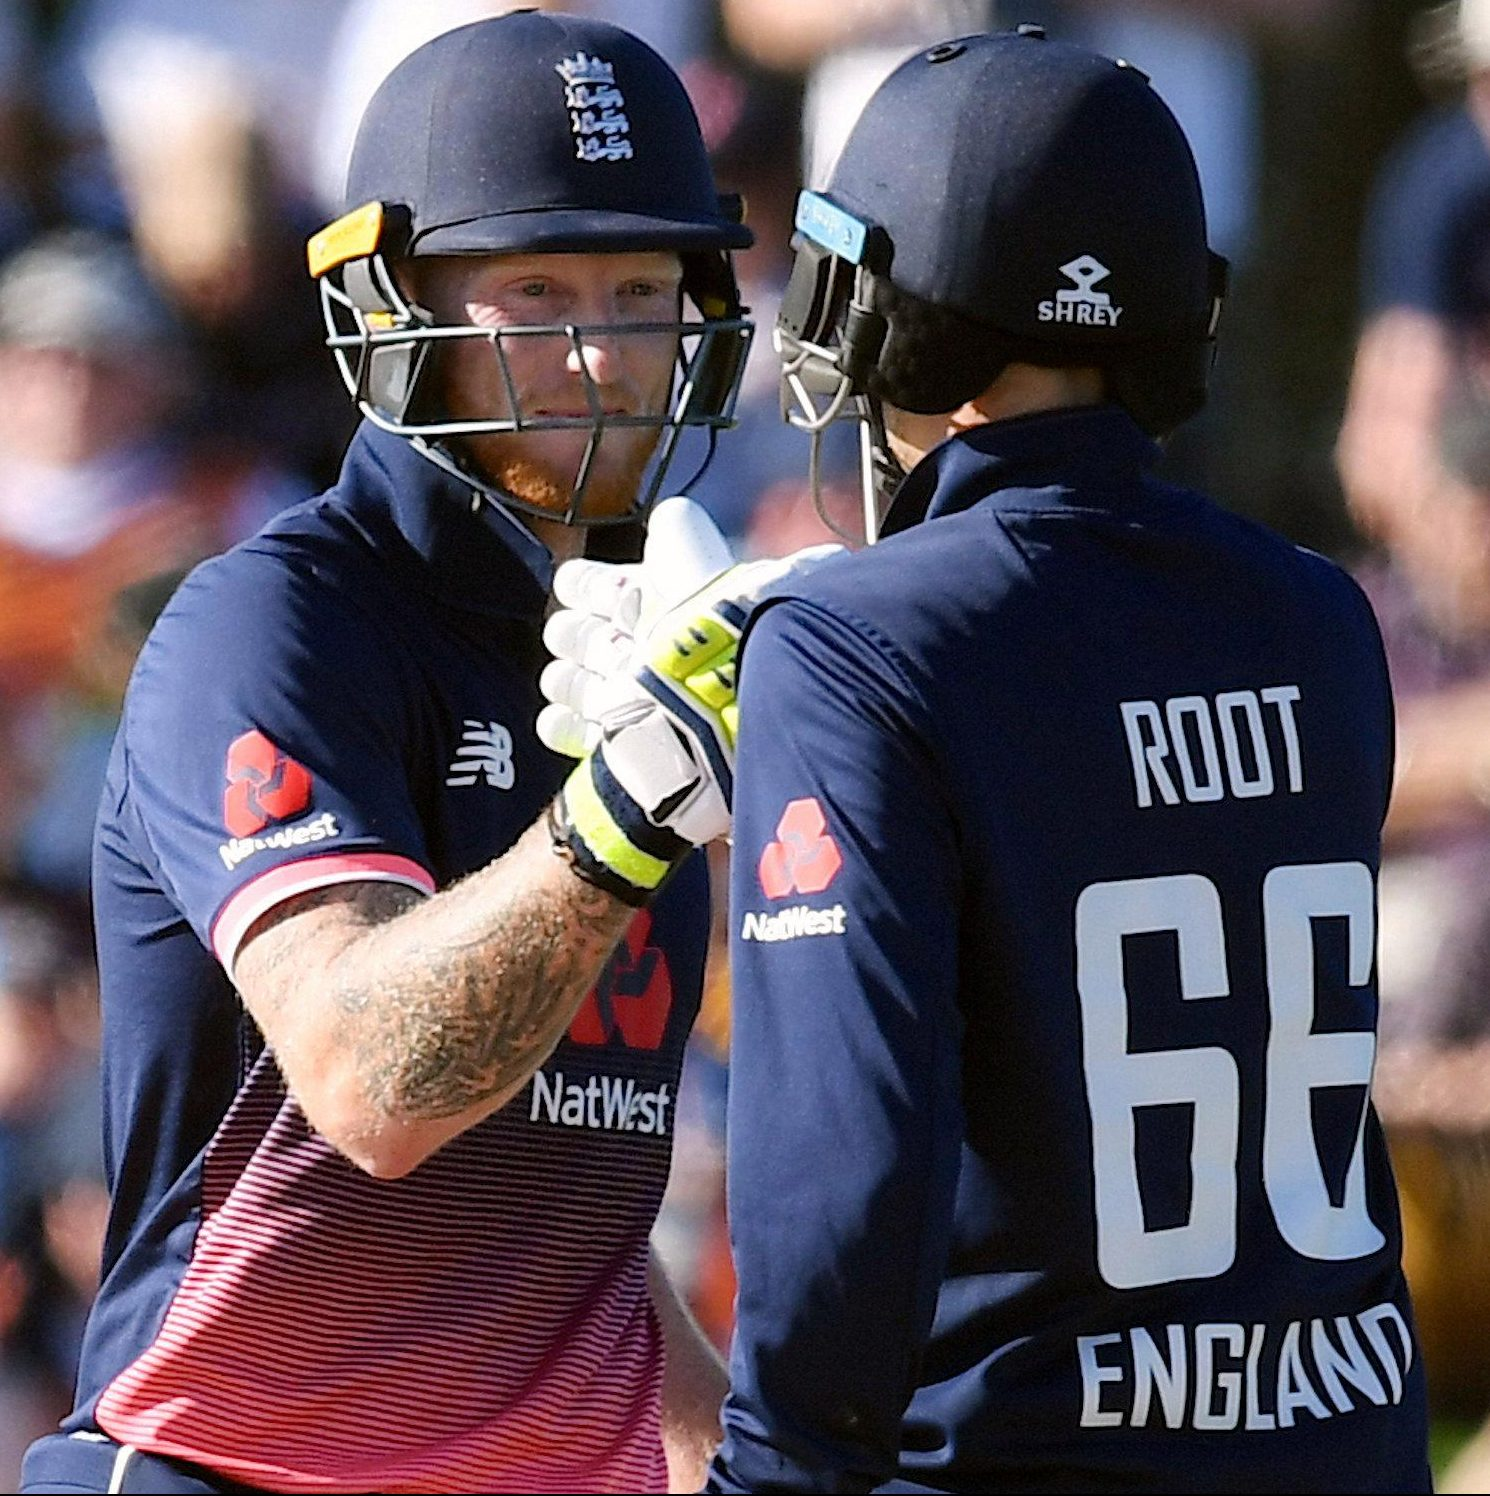 Joe Root must hope the return of Ben Stokes gives England more strength in every respect